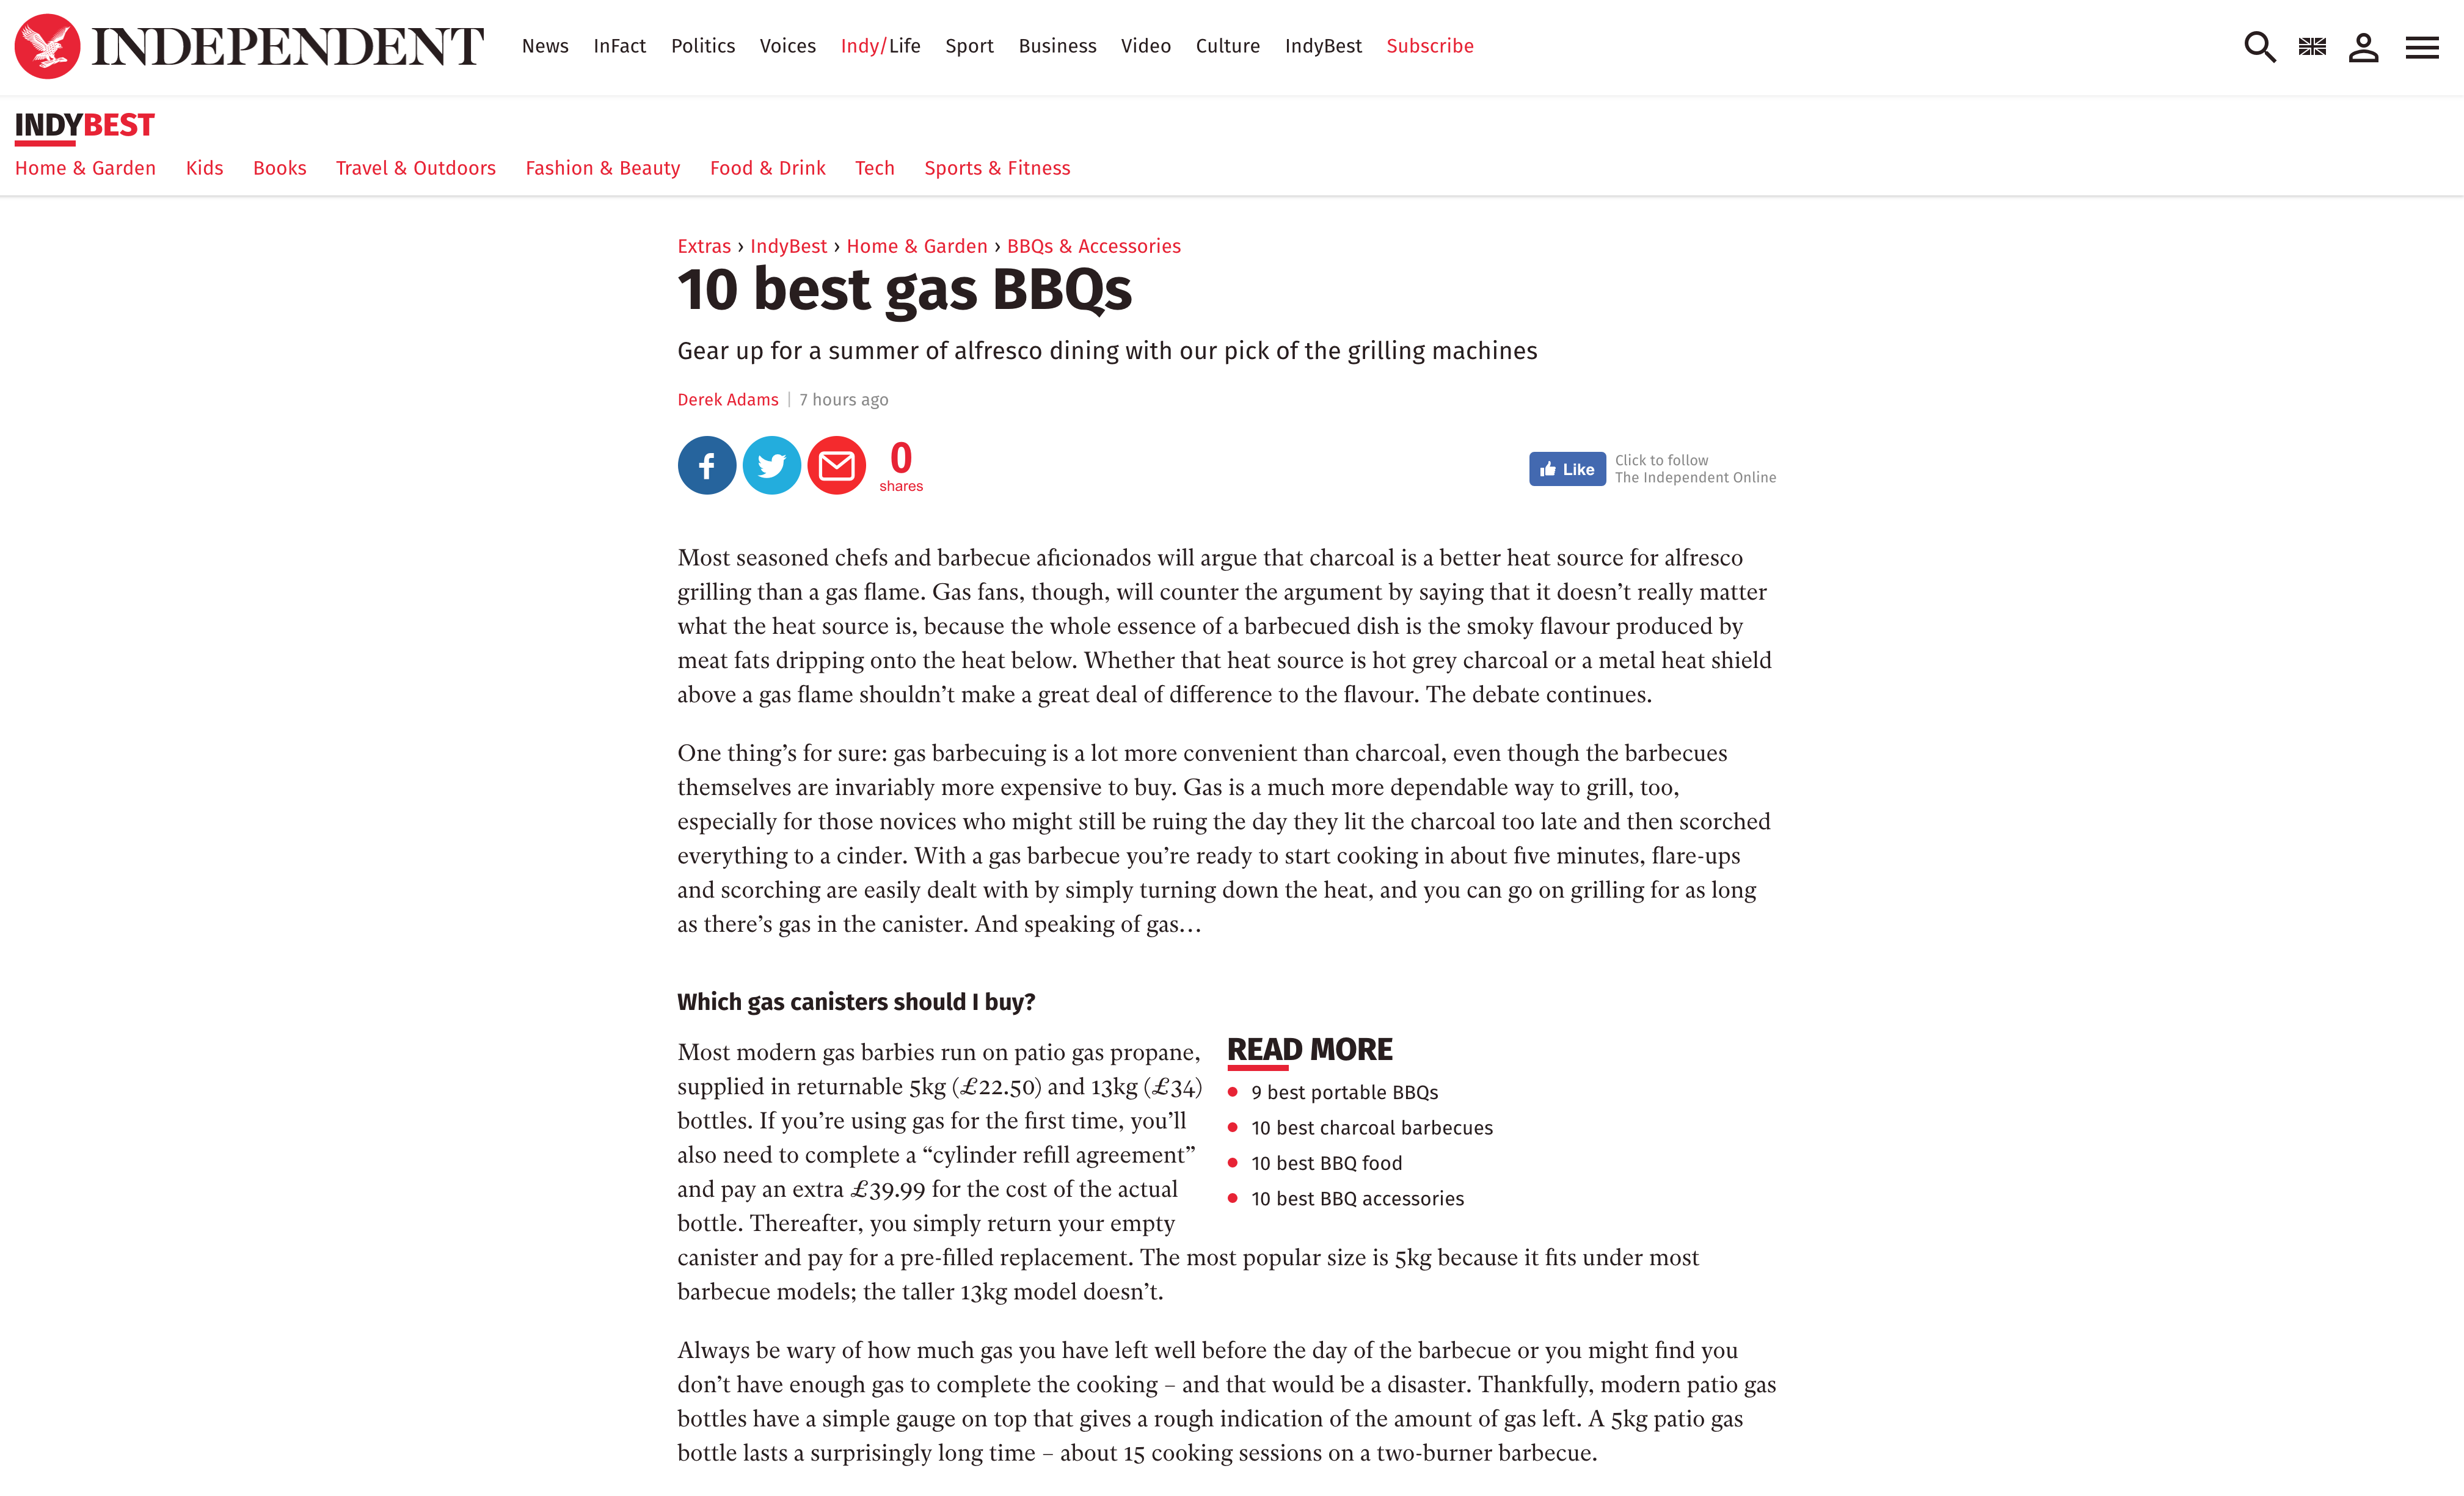 LARGE GAS BARBECUES